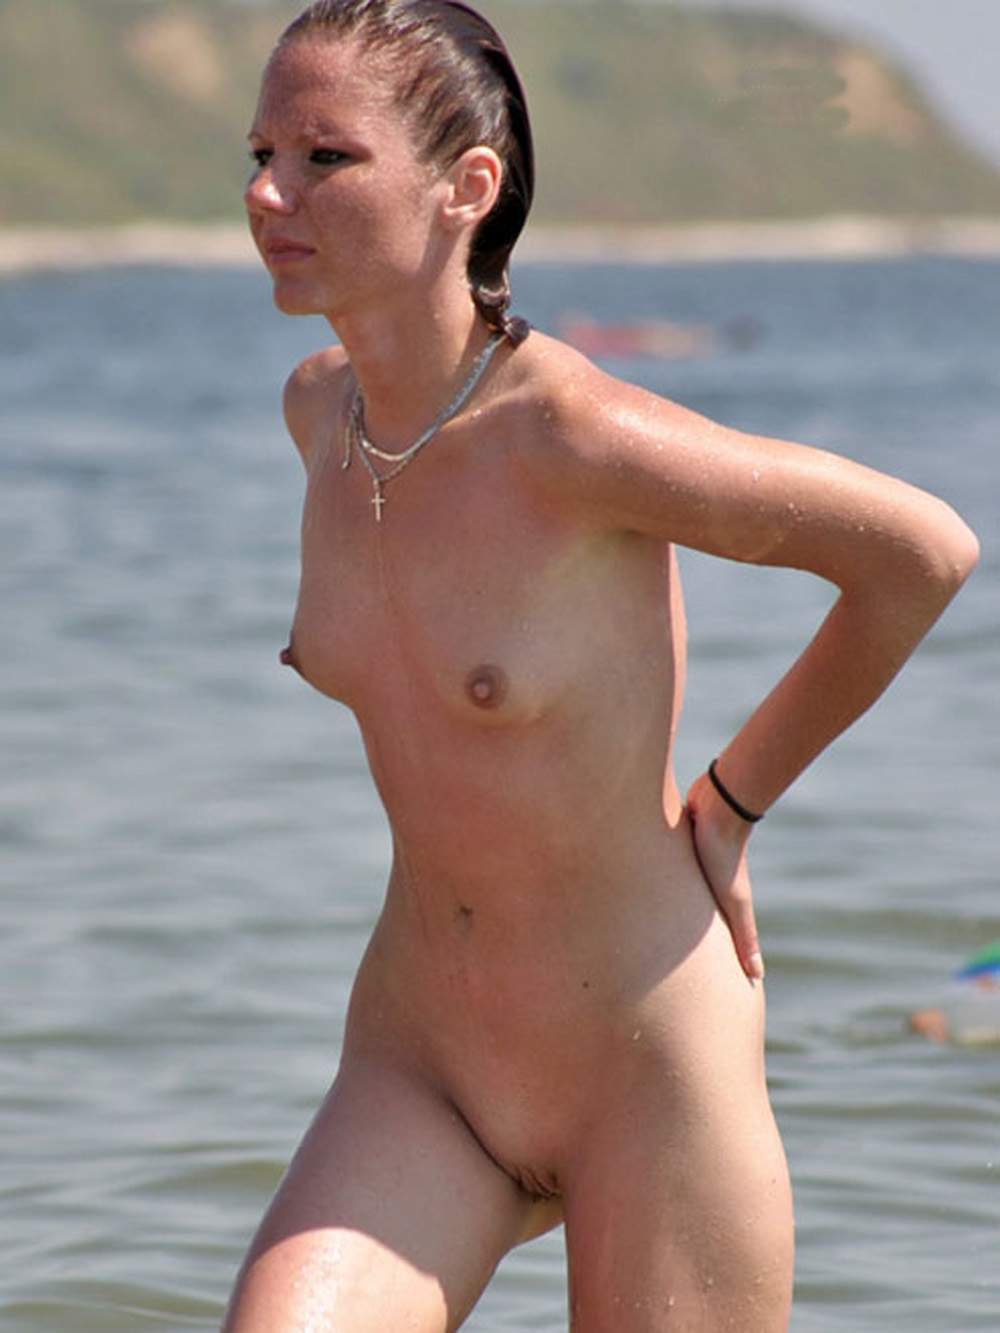 Freckled nude beauty exit from the water to delight us